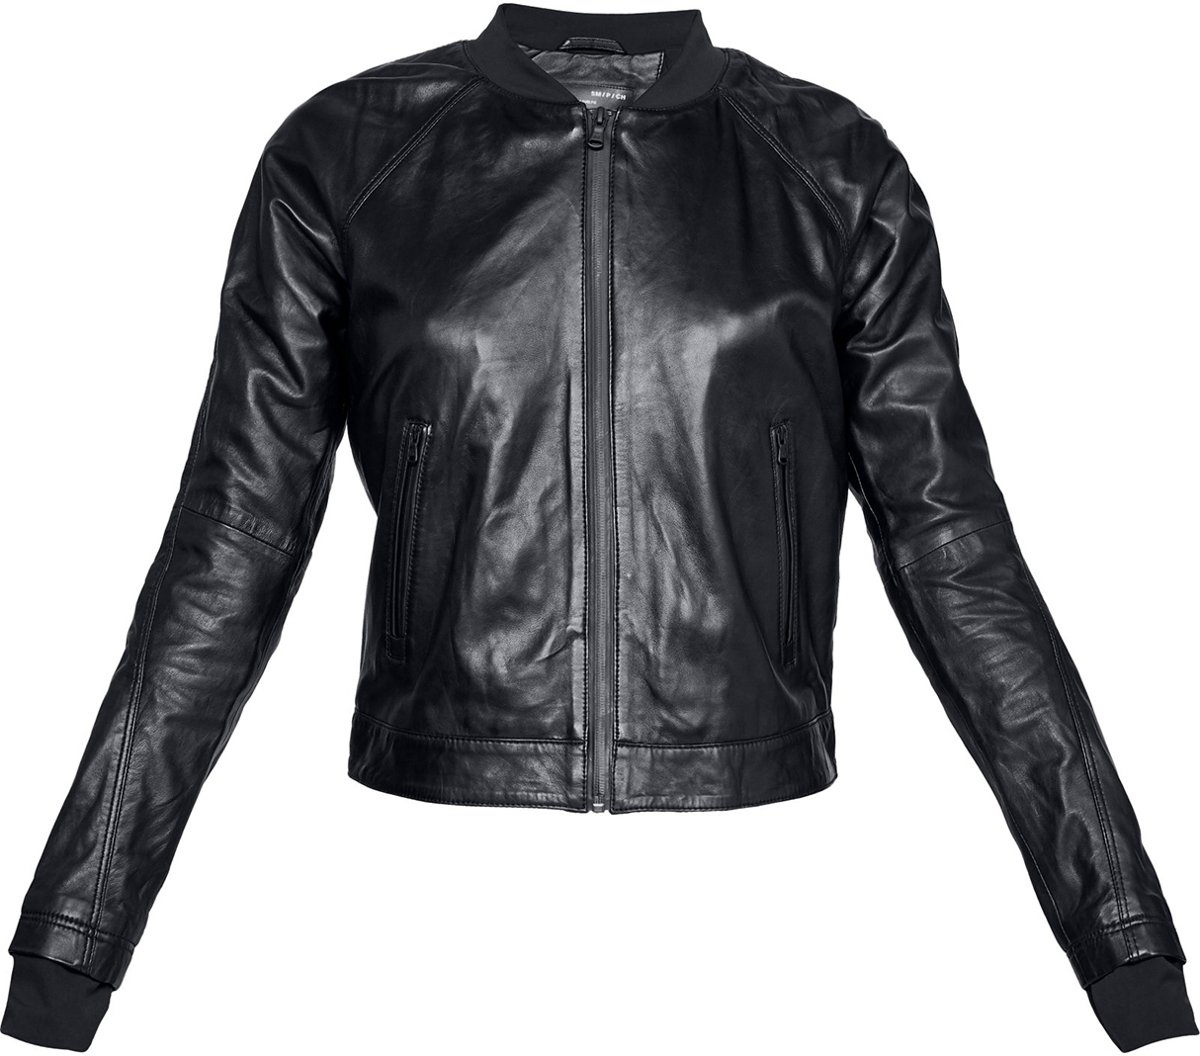 Under Armour - Misty Leather Jacket-BLK - Dames - maat S